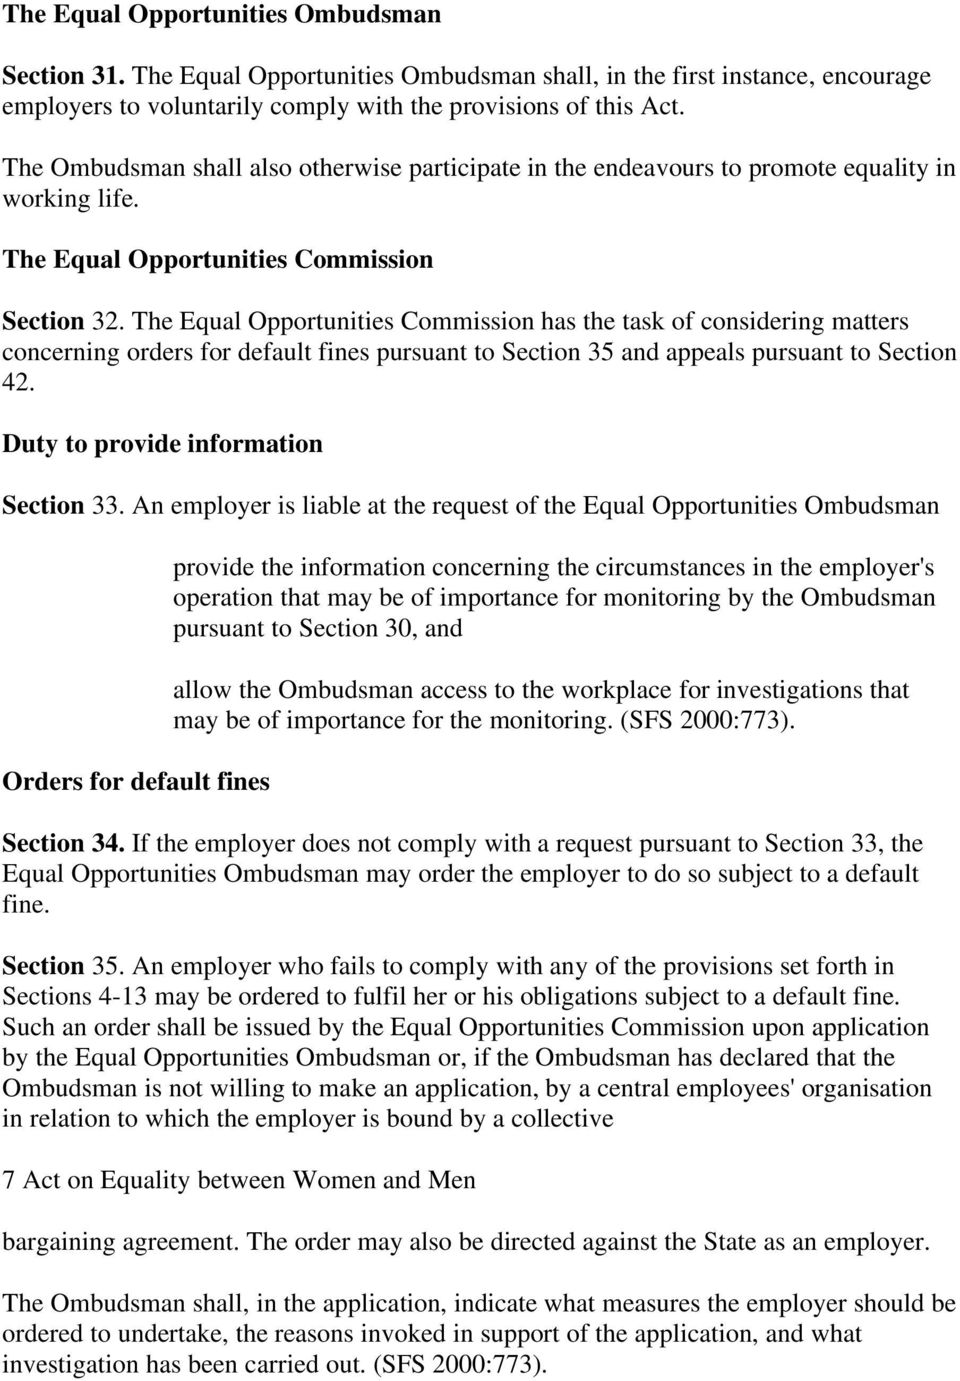 The Equal Opportunities Commission has the task of considering matters concerning orders for default fines pursuant to Section 35 and appeals pursuant to Section 42.